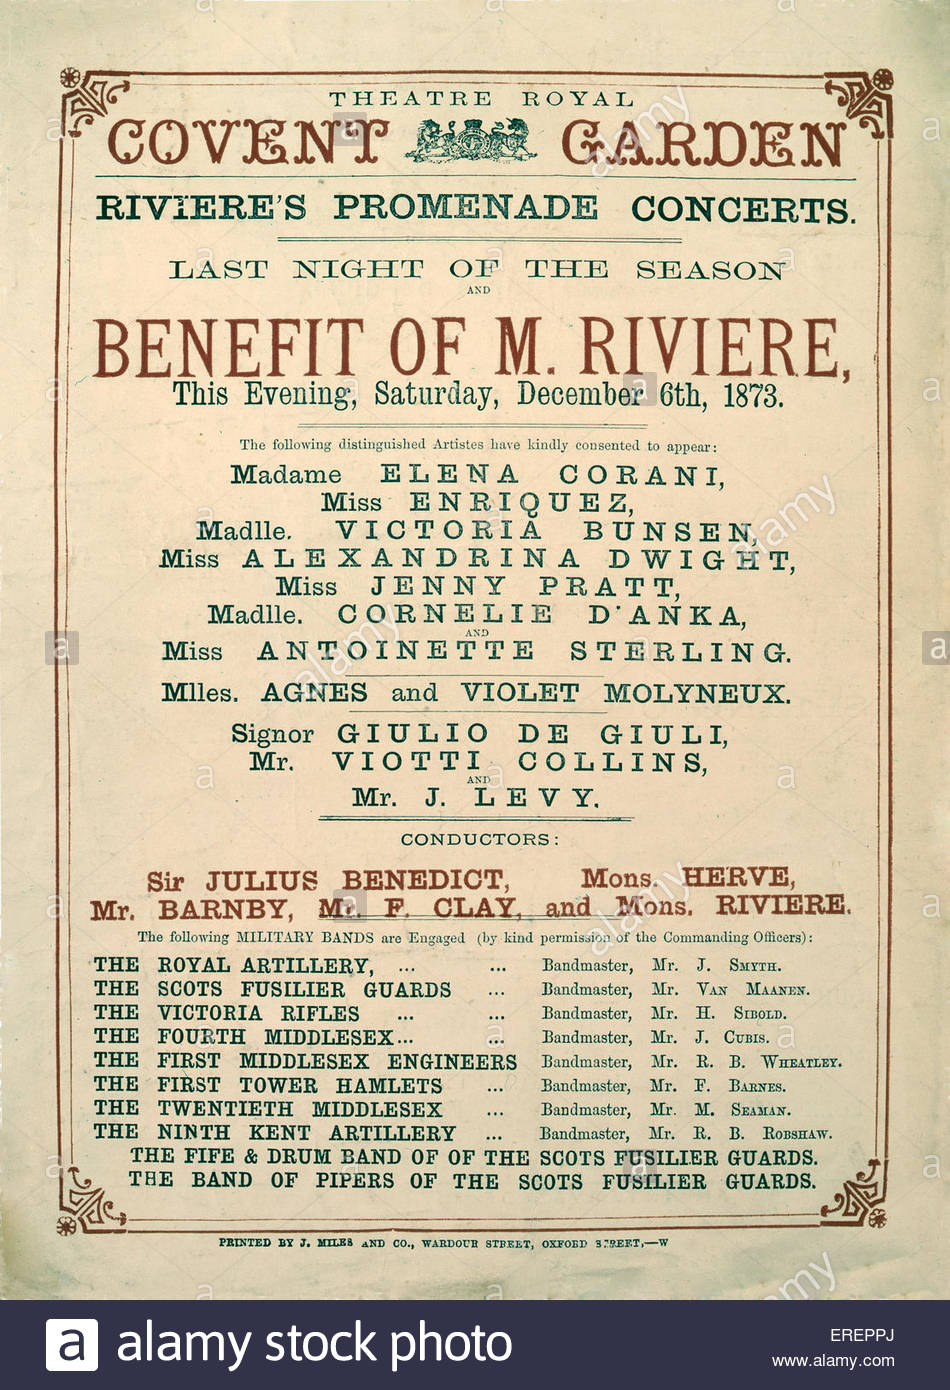 Riviere's Promendade Concerts - announcement of closing night, 6 December 1873. Performed at the Theatre Royal, - Stock Image